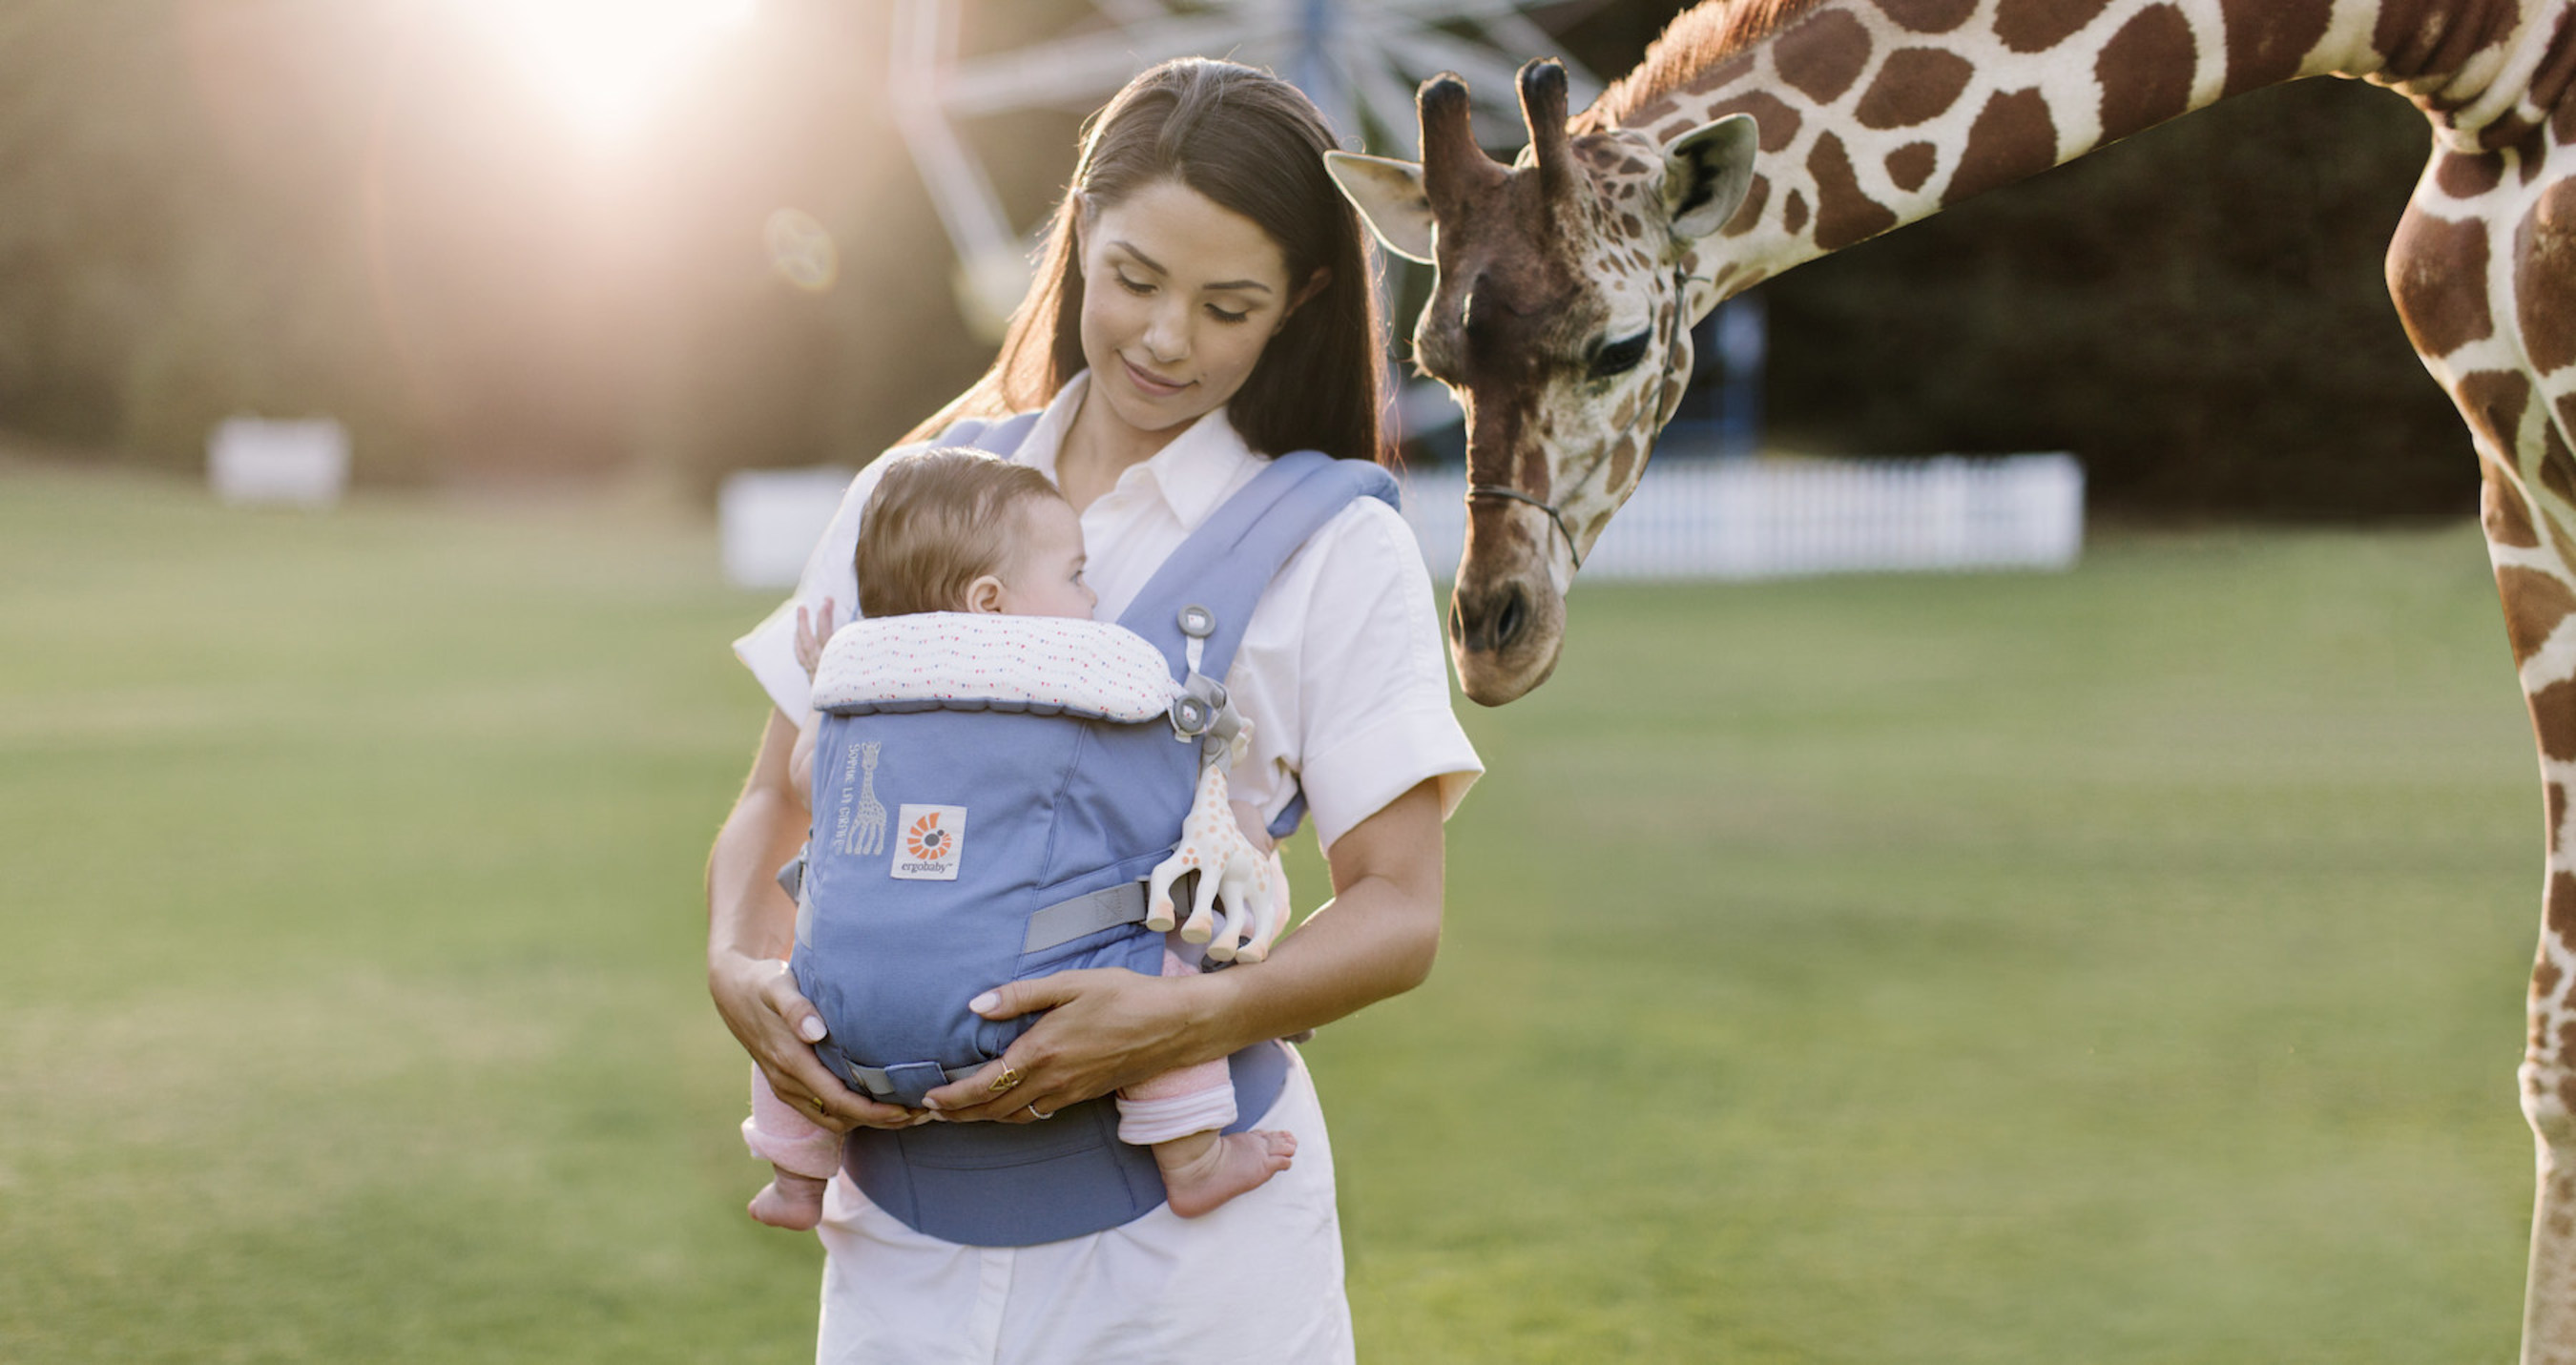 613794262d7 ERGOBABY INTRODUCES SOPHIE LA GIRAFE BABY CARRIERS - The New Ergobaby ADAPT  Carrier And The Award